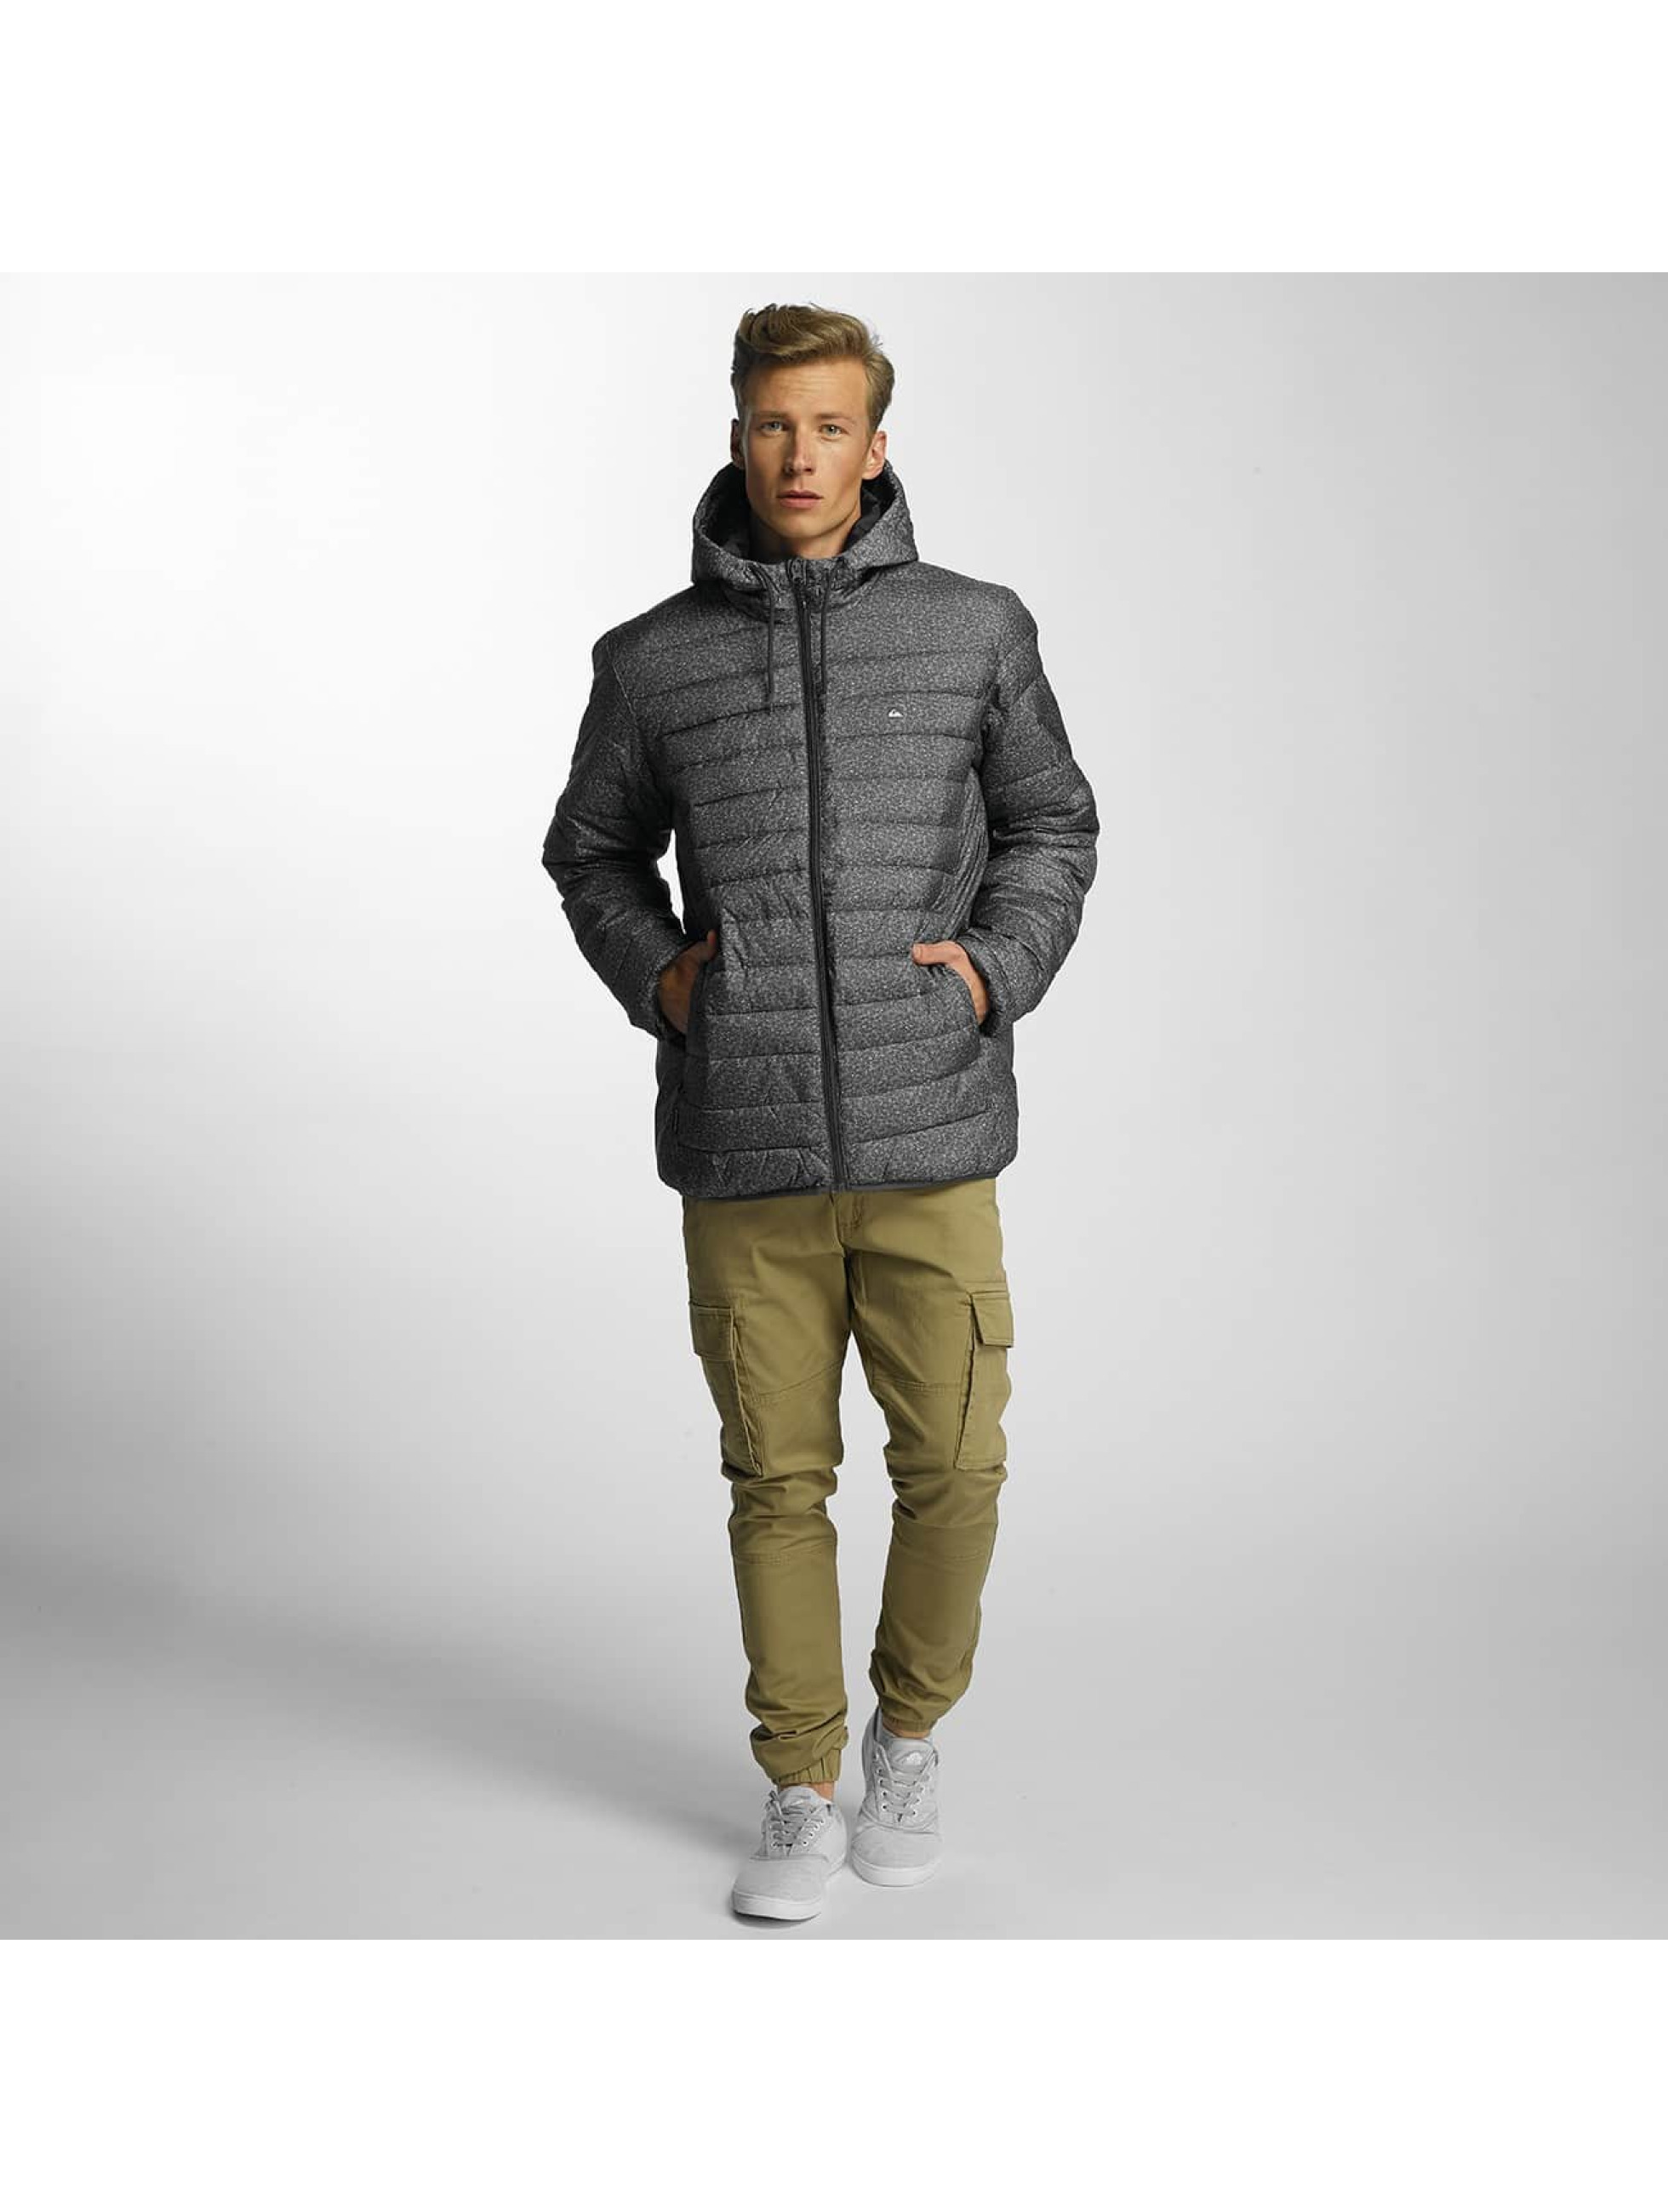 Quiksilver Giacca invernale Everyday Scaly grigio